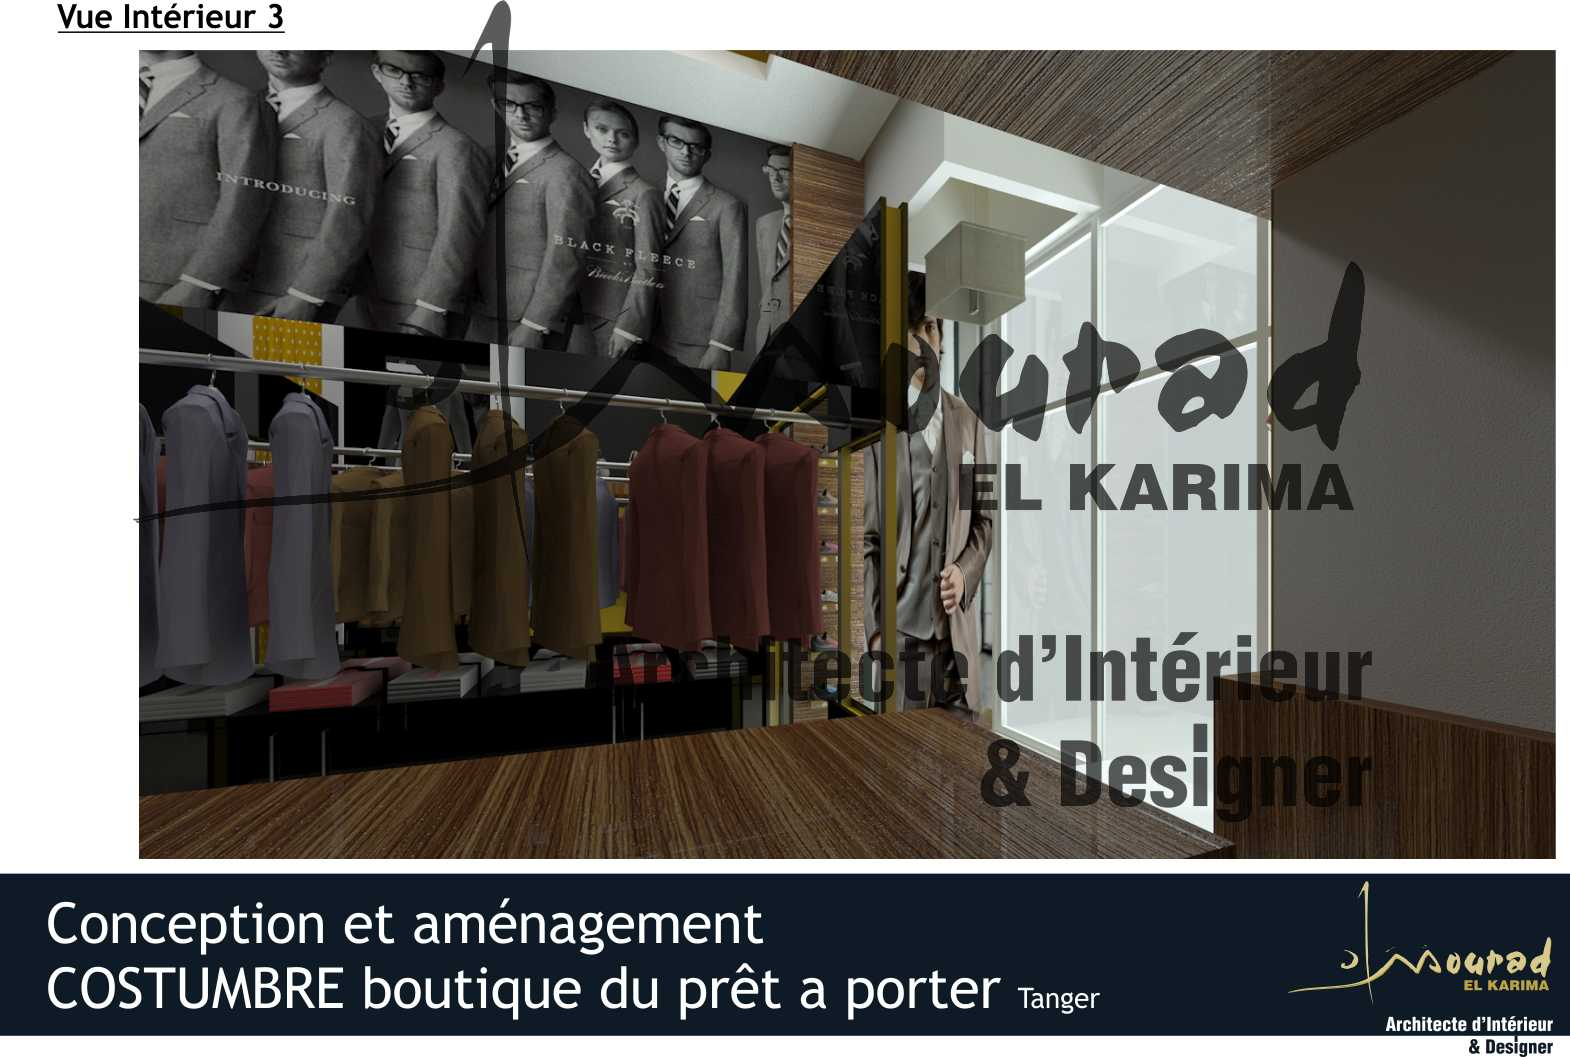 Costumbre boutique de pr t a porter tanger mourad el for Pret a porter decoration